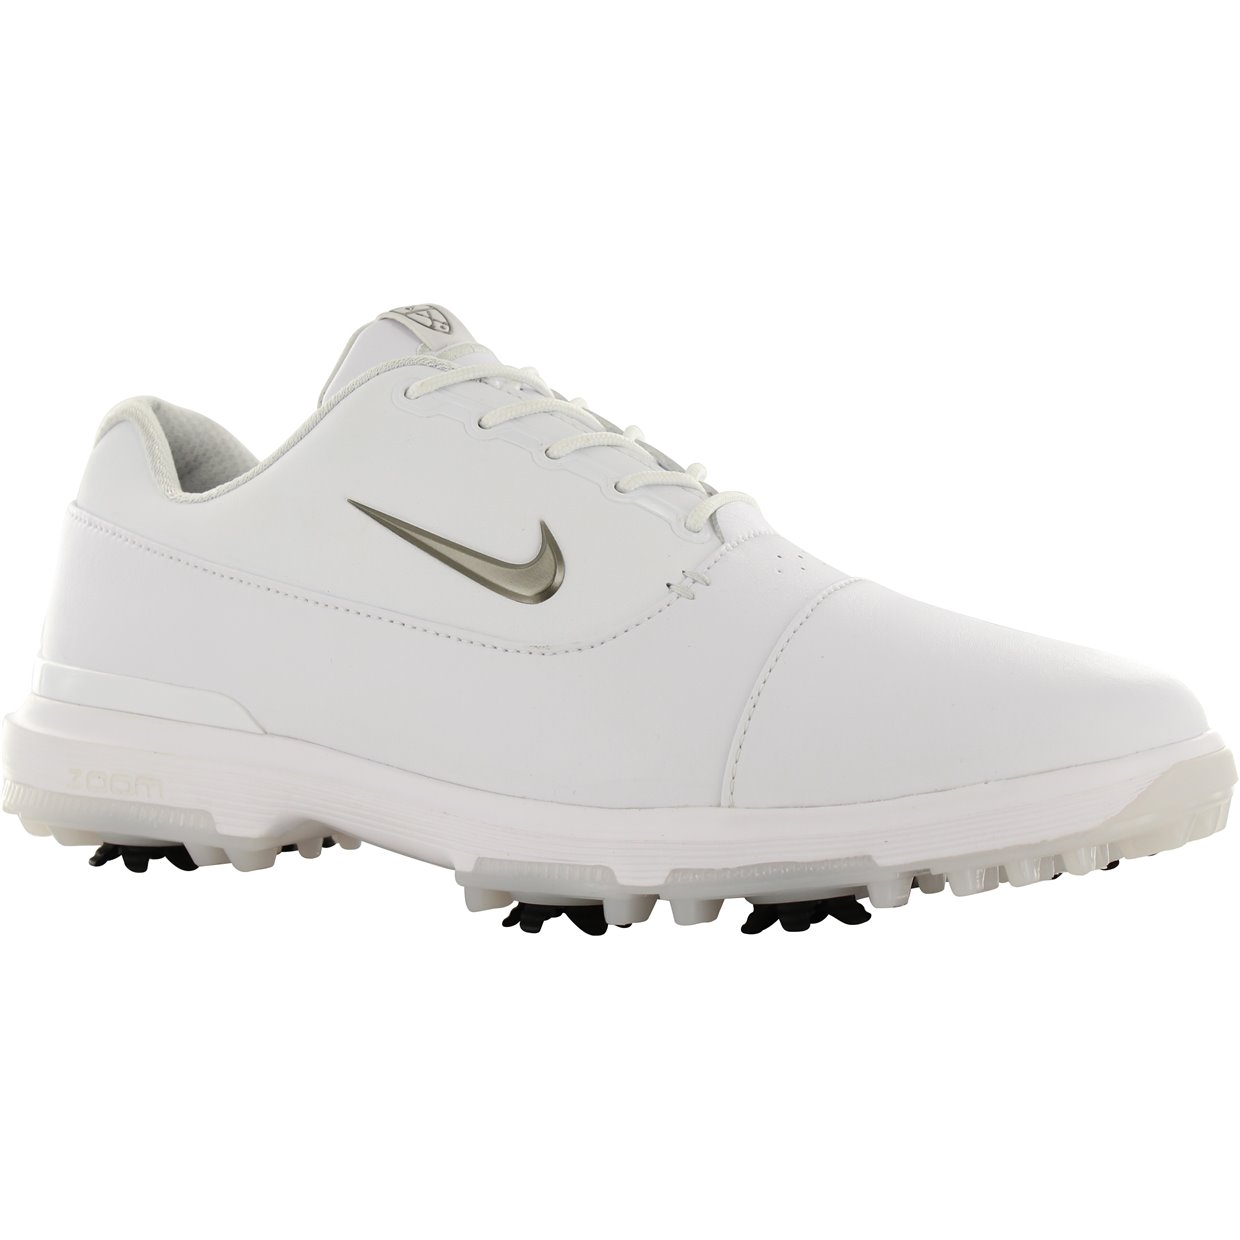 cecbfb96 Nike Air Zoom victory Pro Golf Shoe Shoes · Alternate Product Image of  Right Shoe Side Angle ...